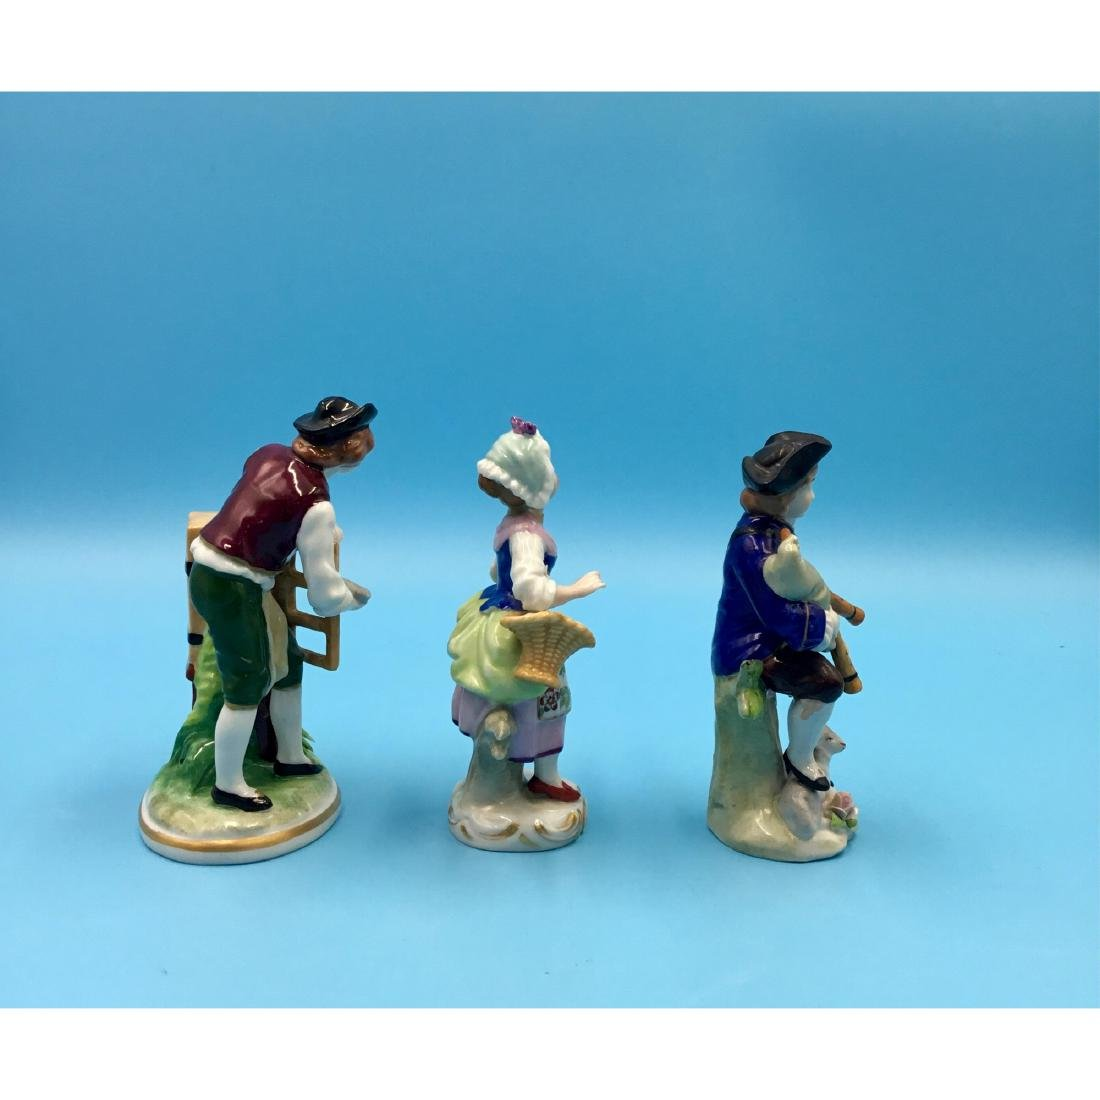 GROUP OF 3 SITZENDORF GERMAN PORCELAIN FIGURINES - 4